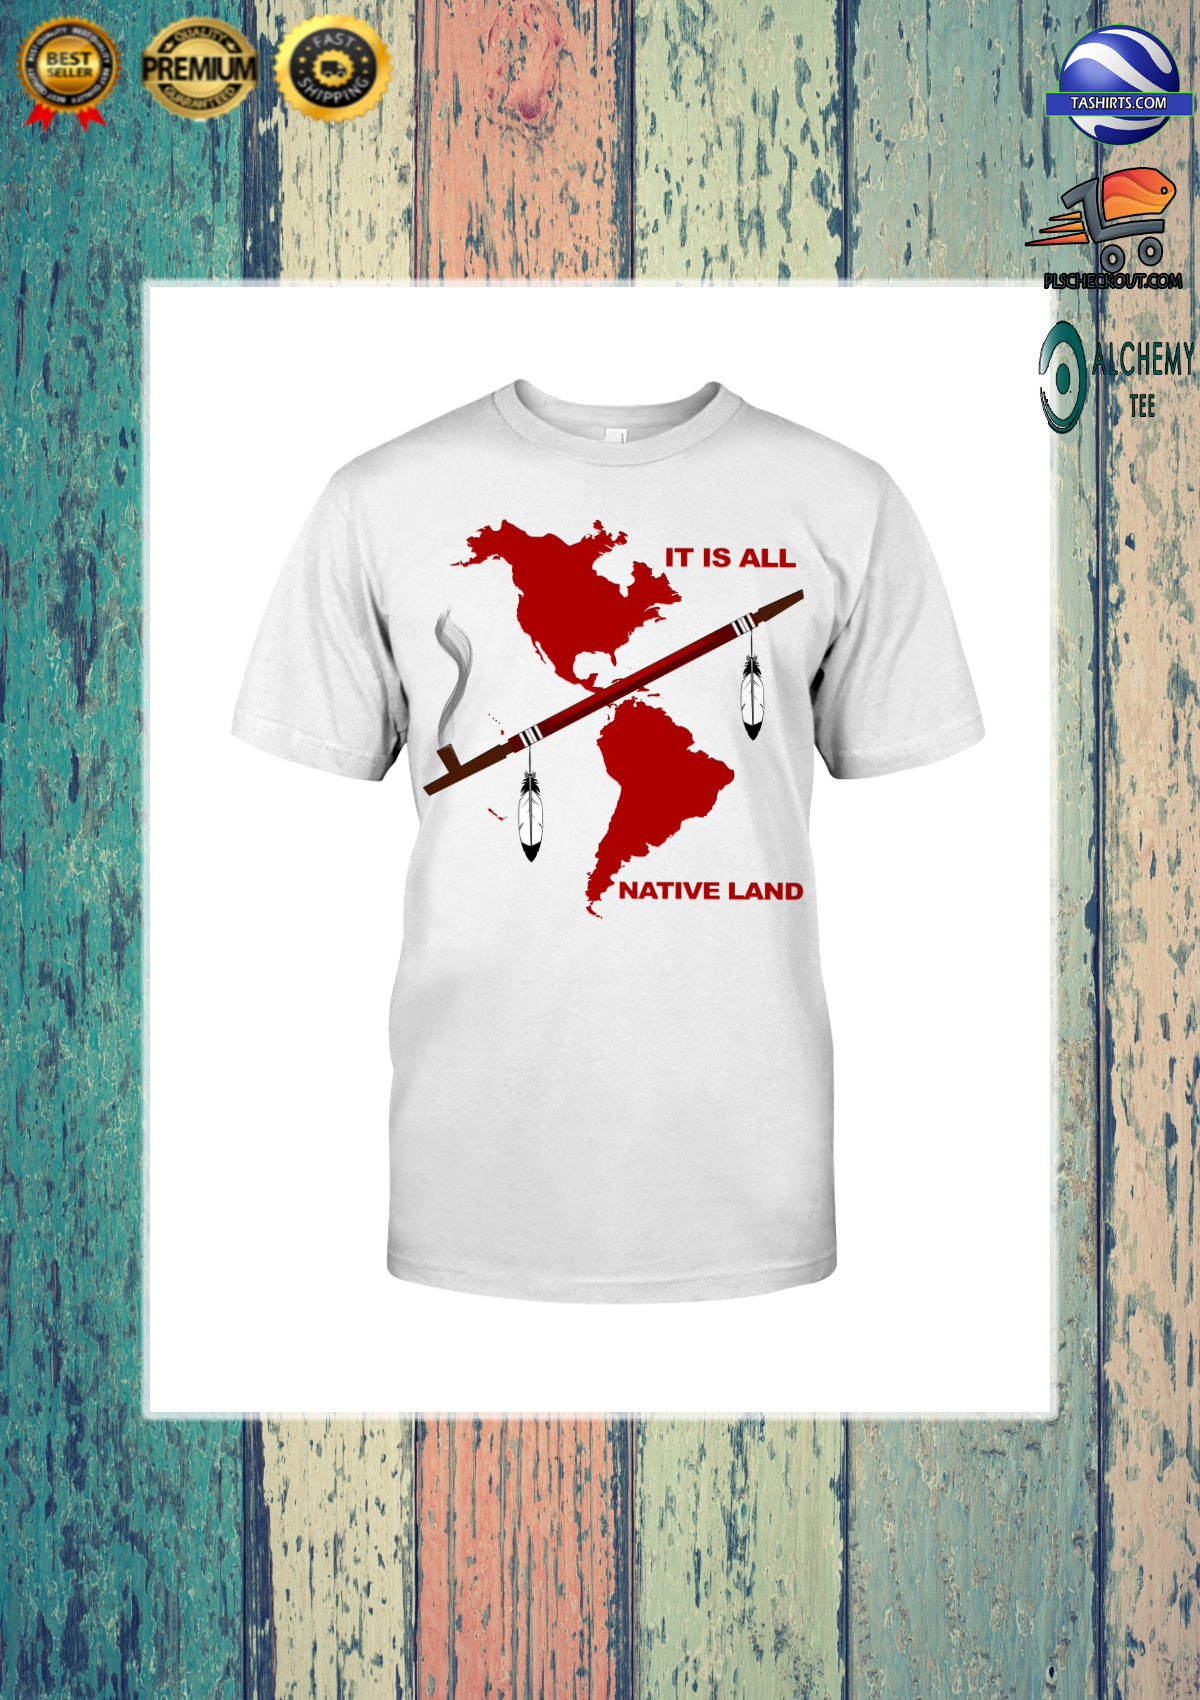 It is all native land shirt and hoodie